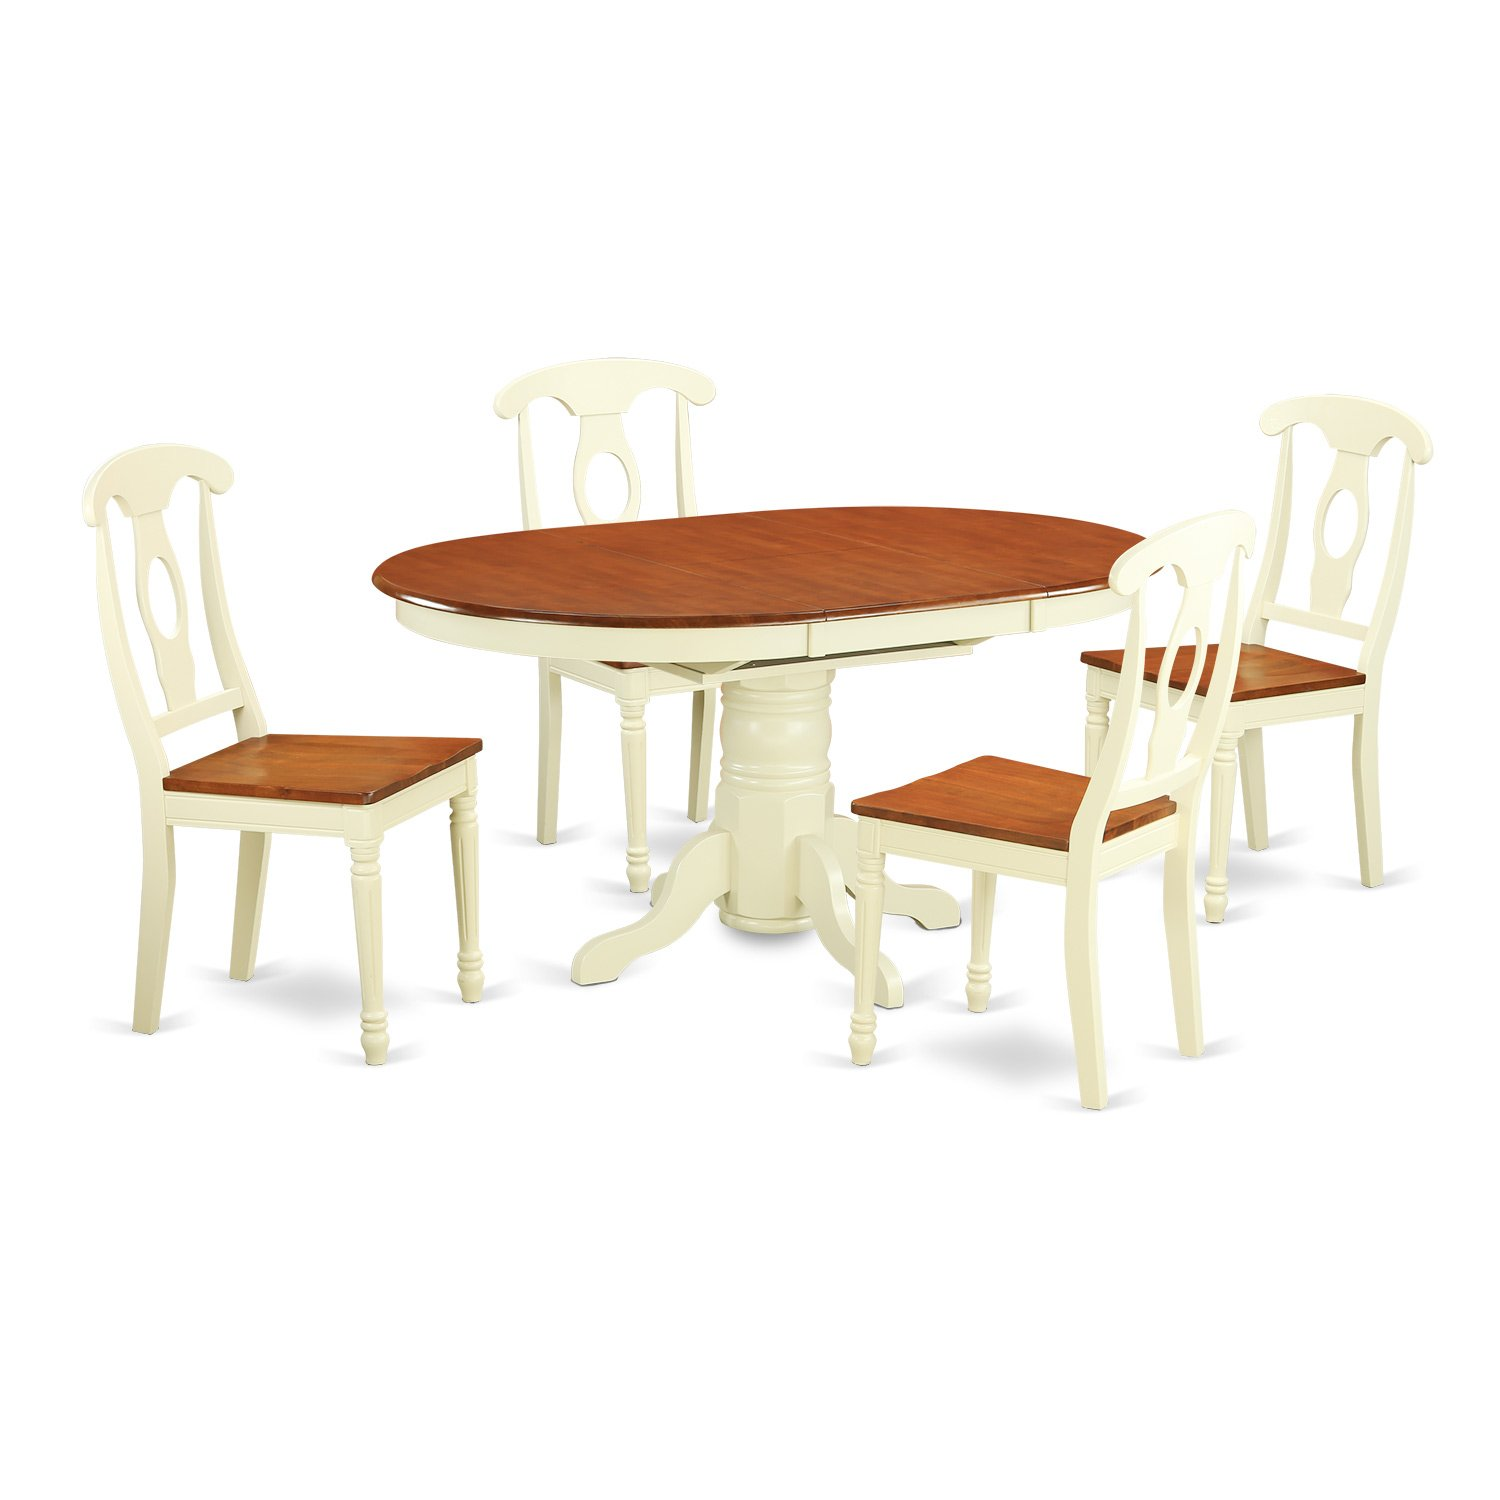 East West Furniture KENL5-WHI-W 5-Piece Dining Table Set by East West Furniture